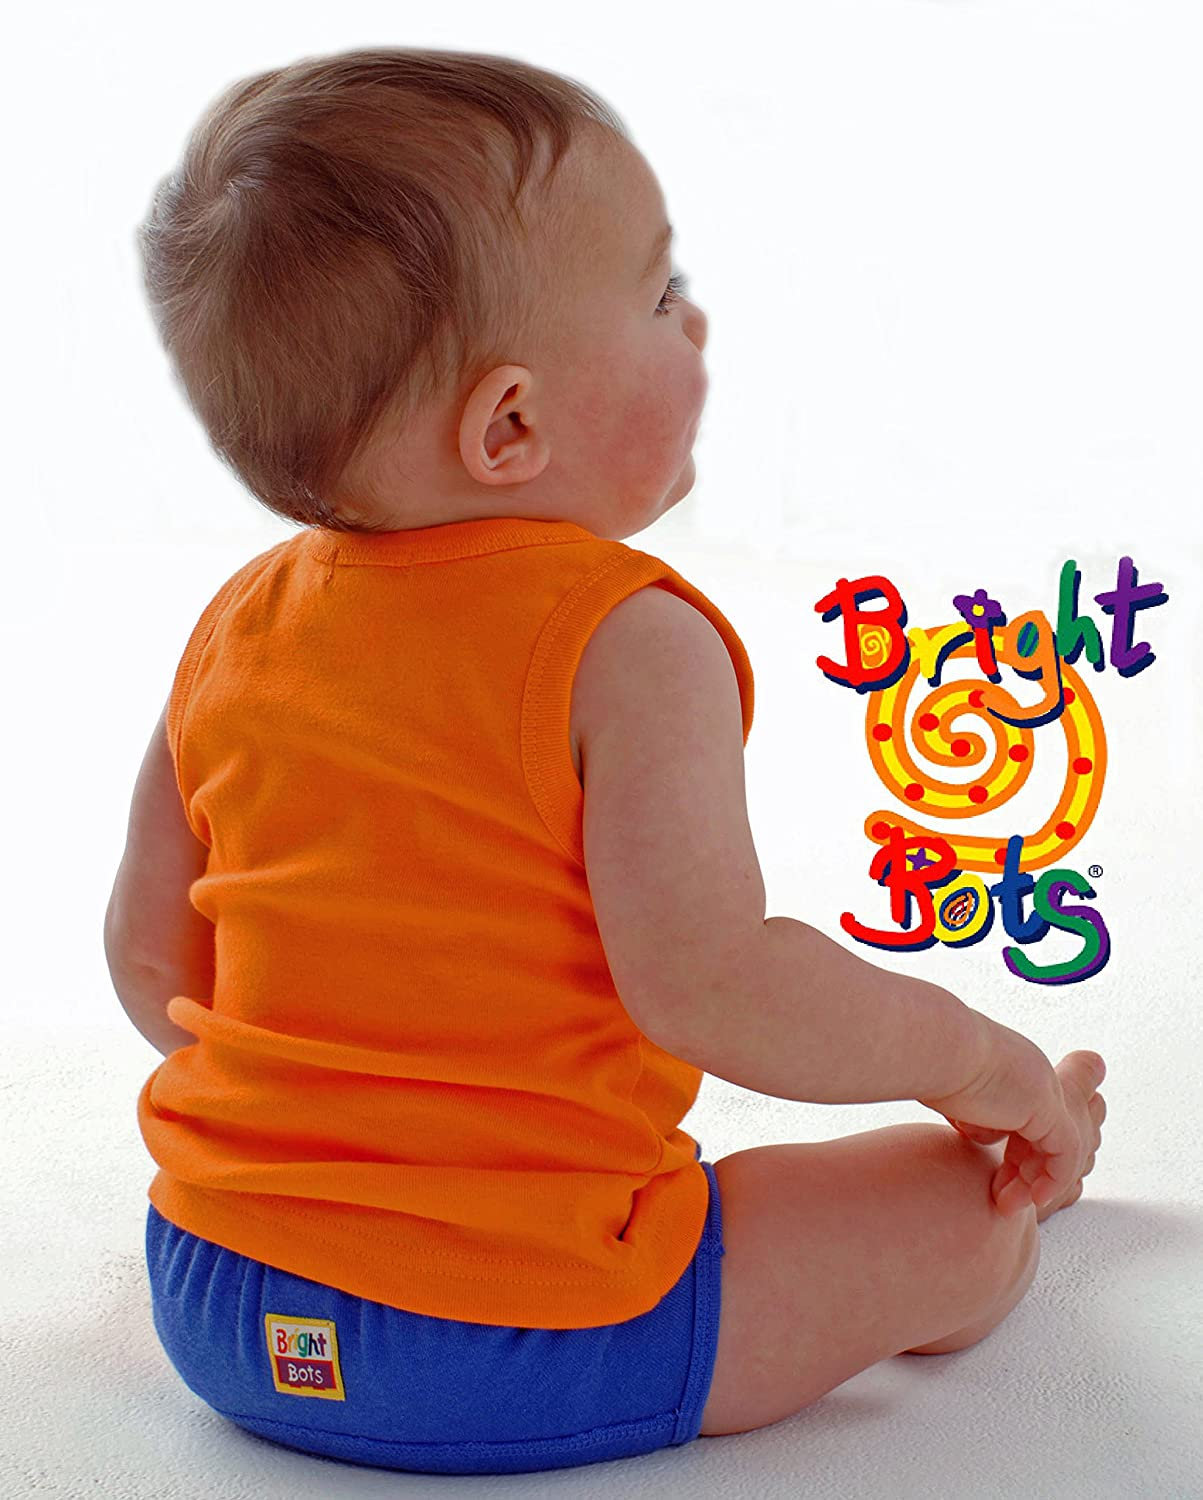 Approx 12months Boy Bright Bots Boys Washable Potty Training Pants 4pk Small with PUL Waterproof Lining